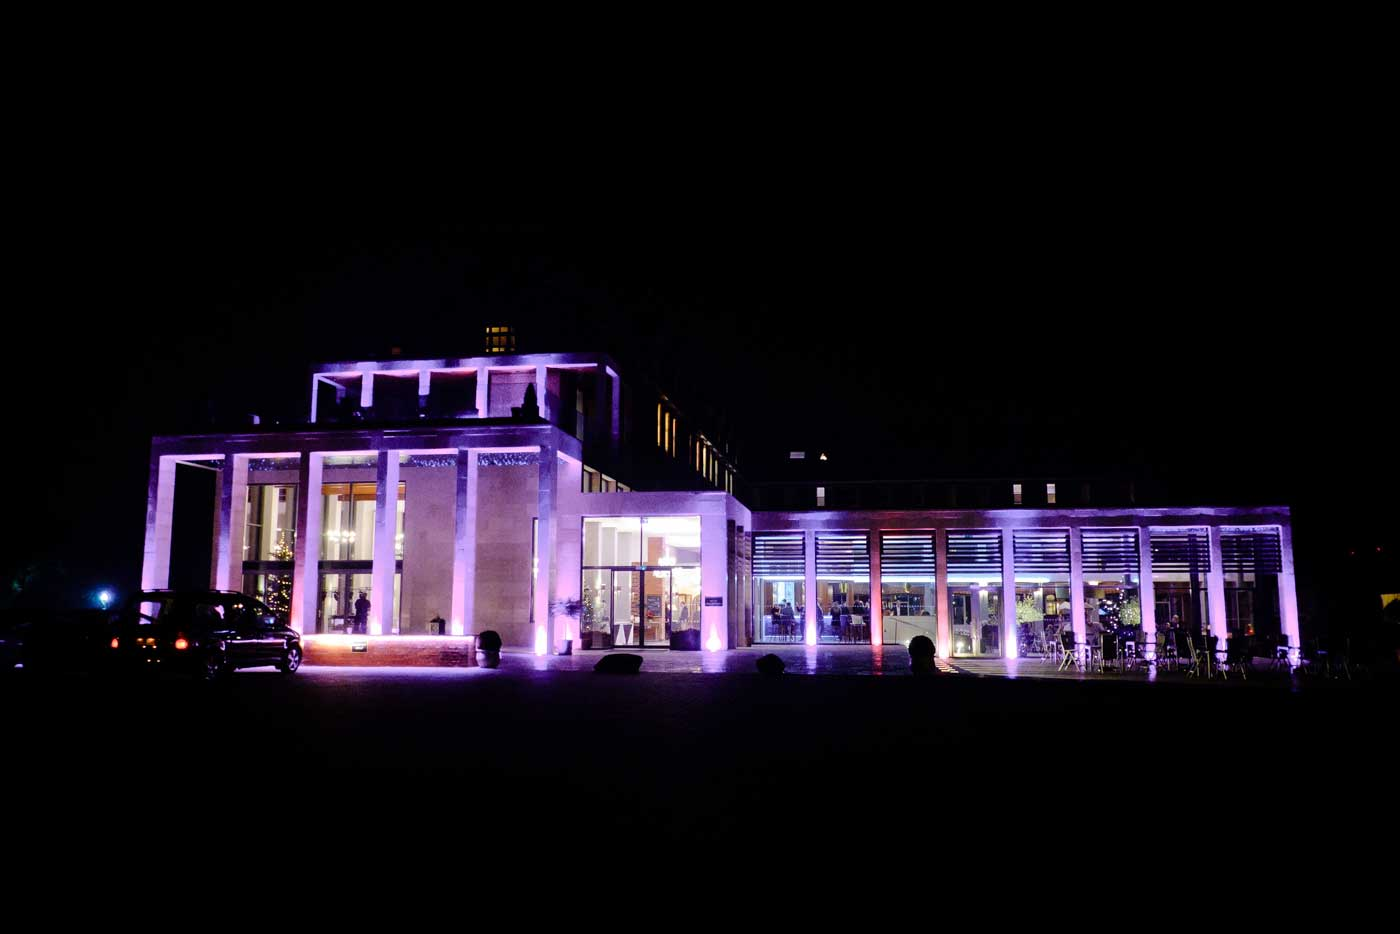 Stanbrook Abbey lightup at night